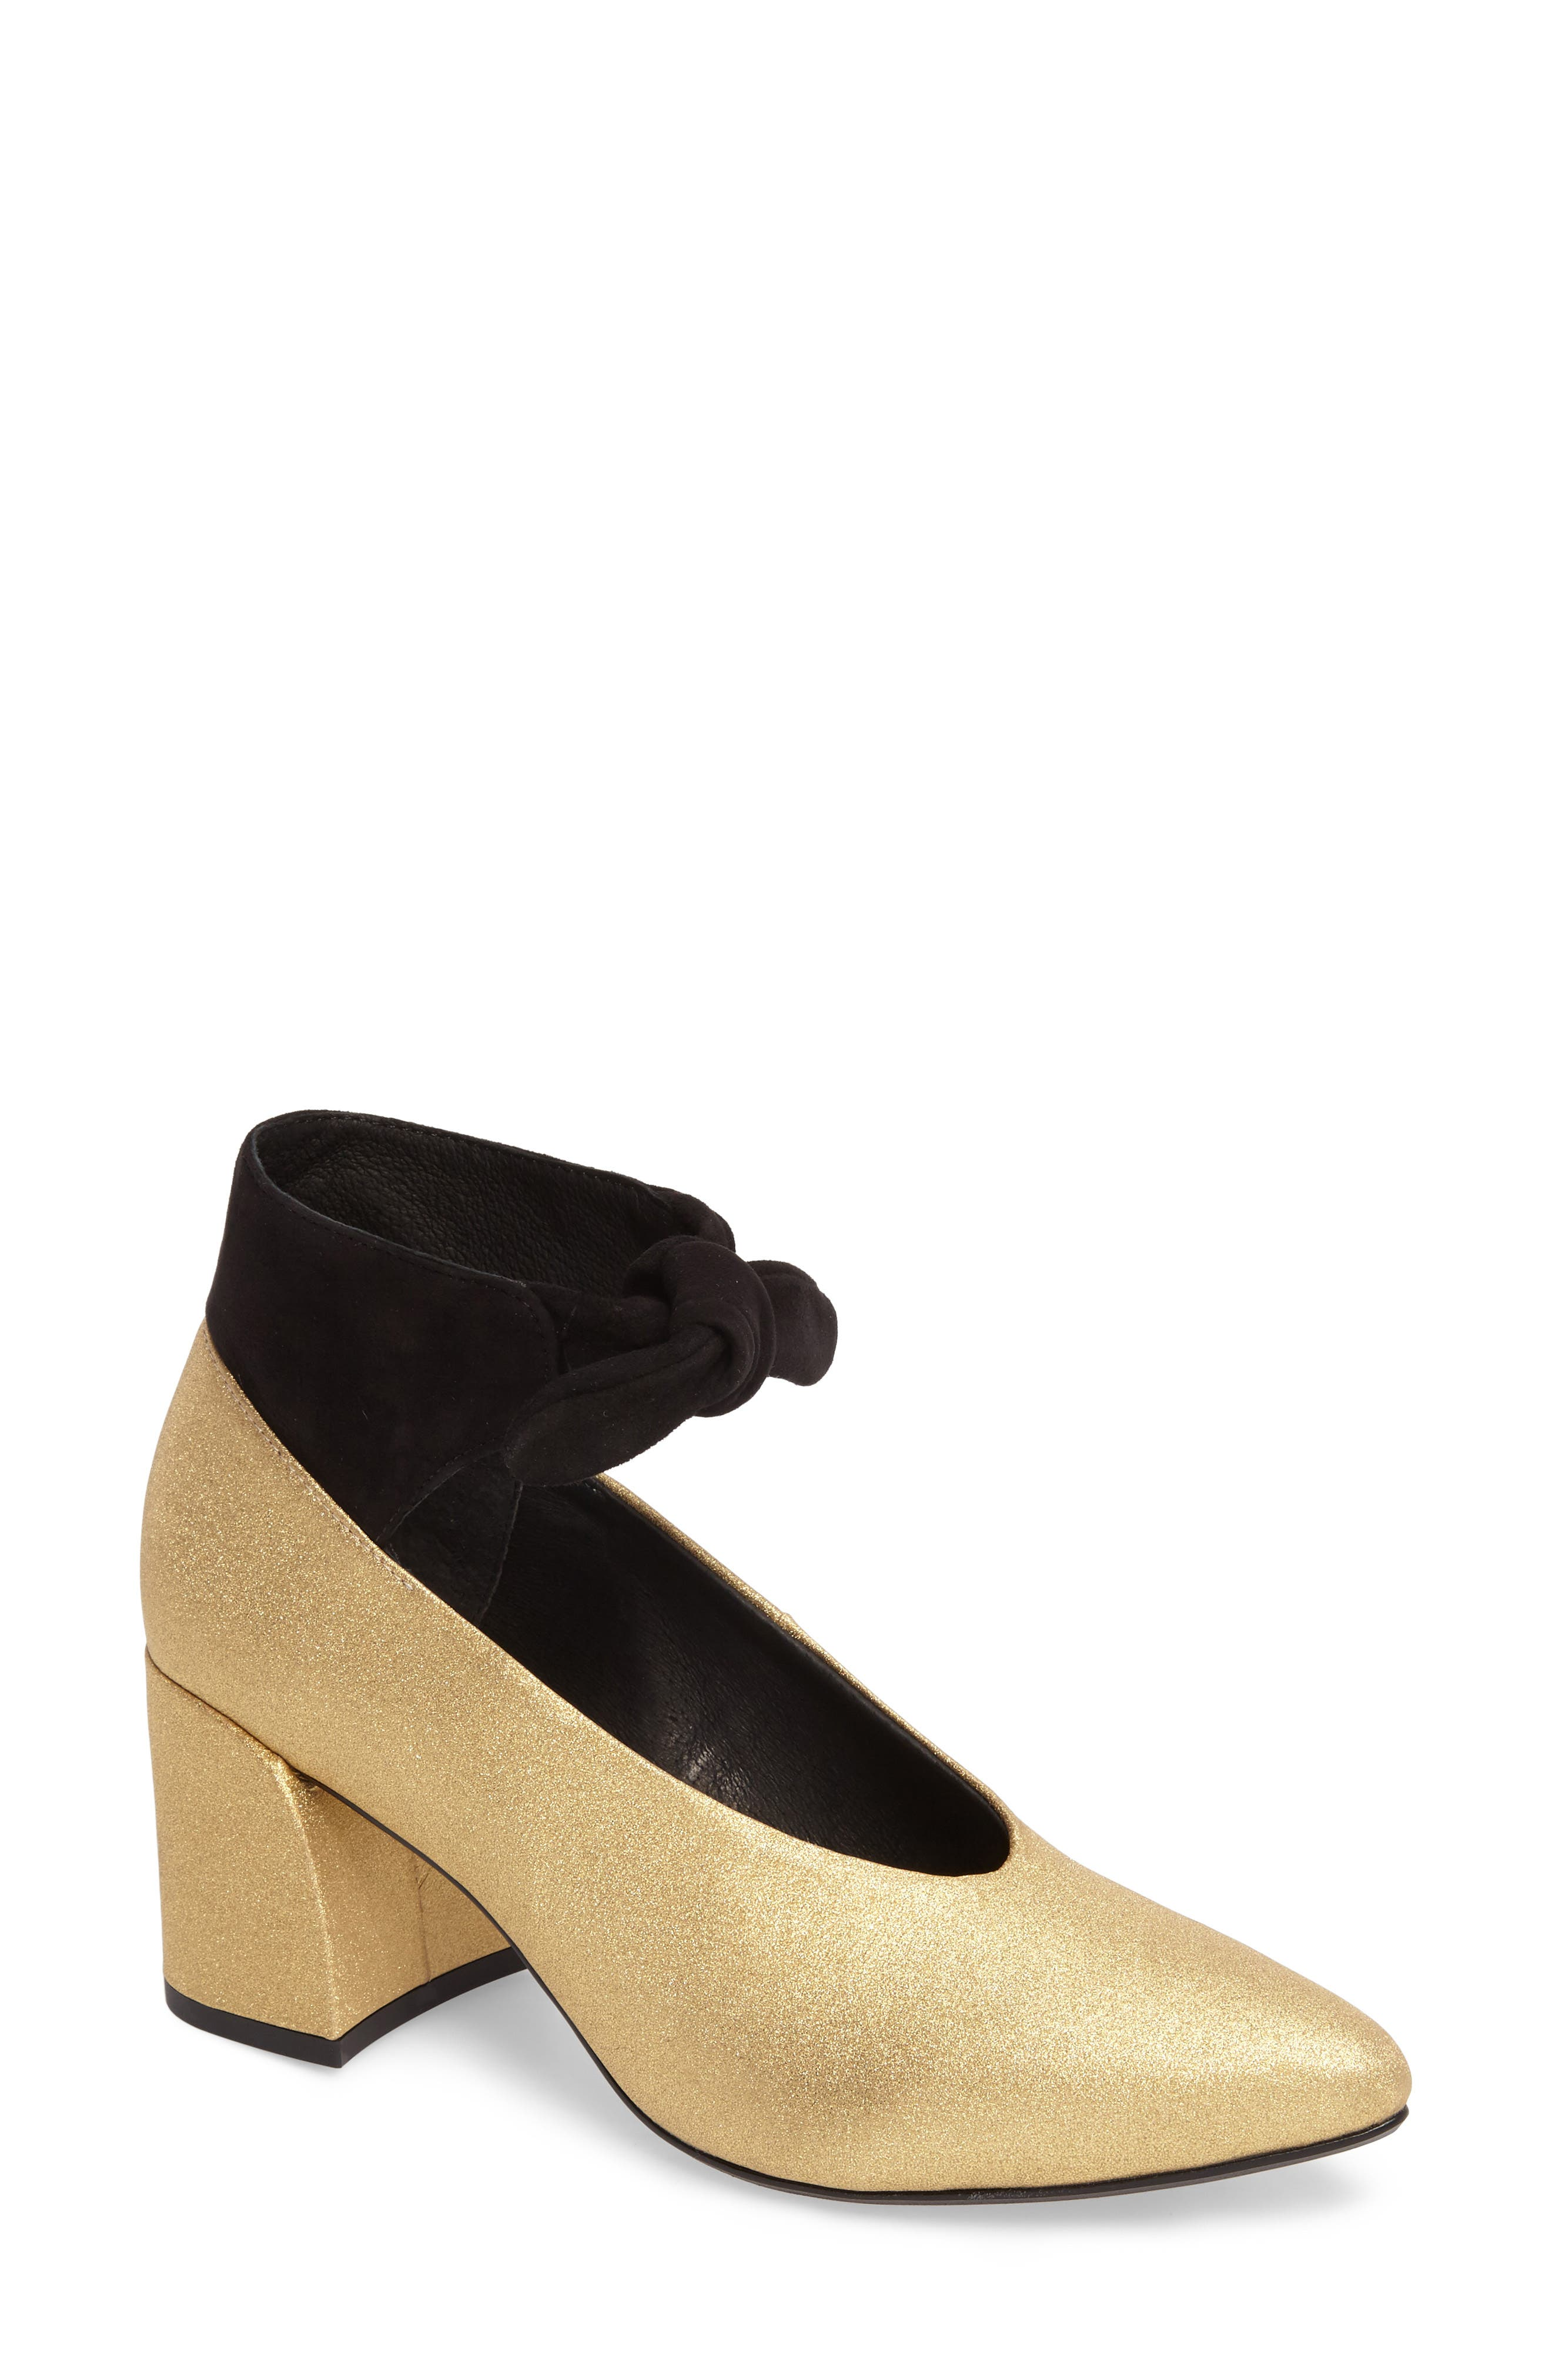 Cecelia New York Brenda Pump (Women)